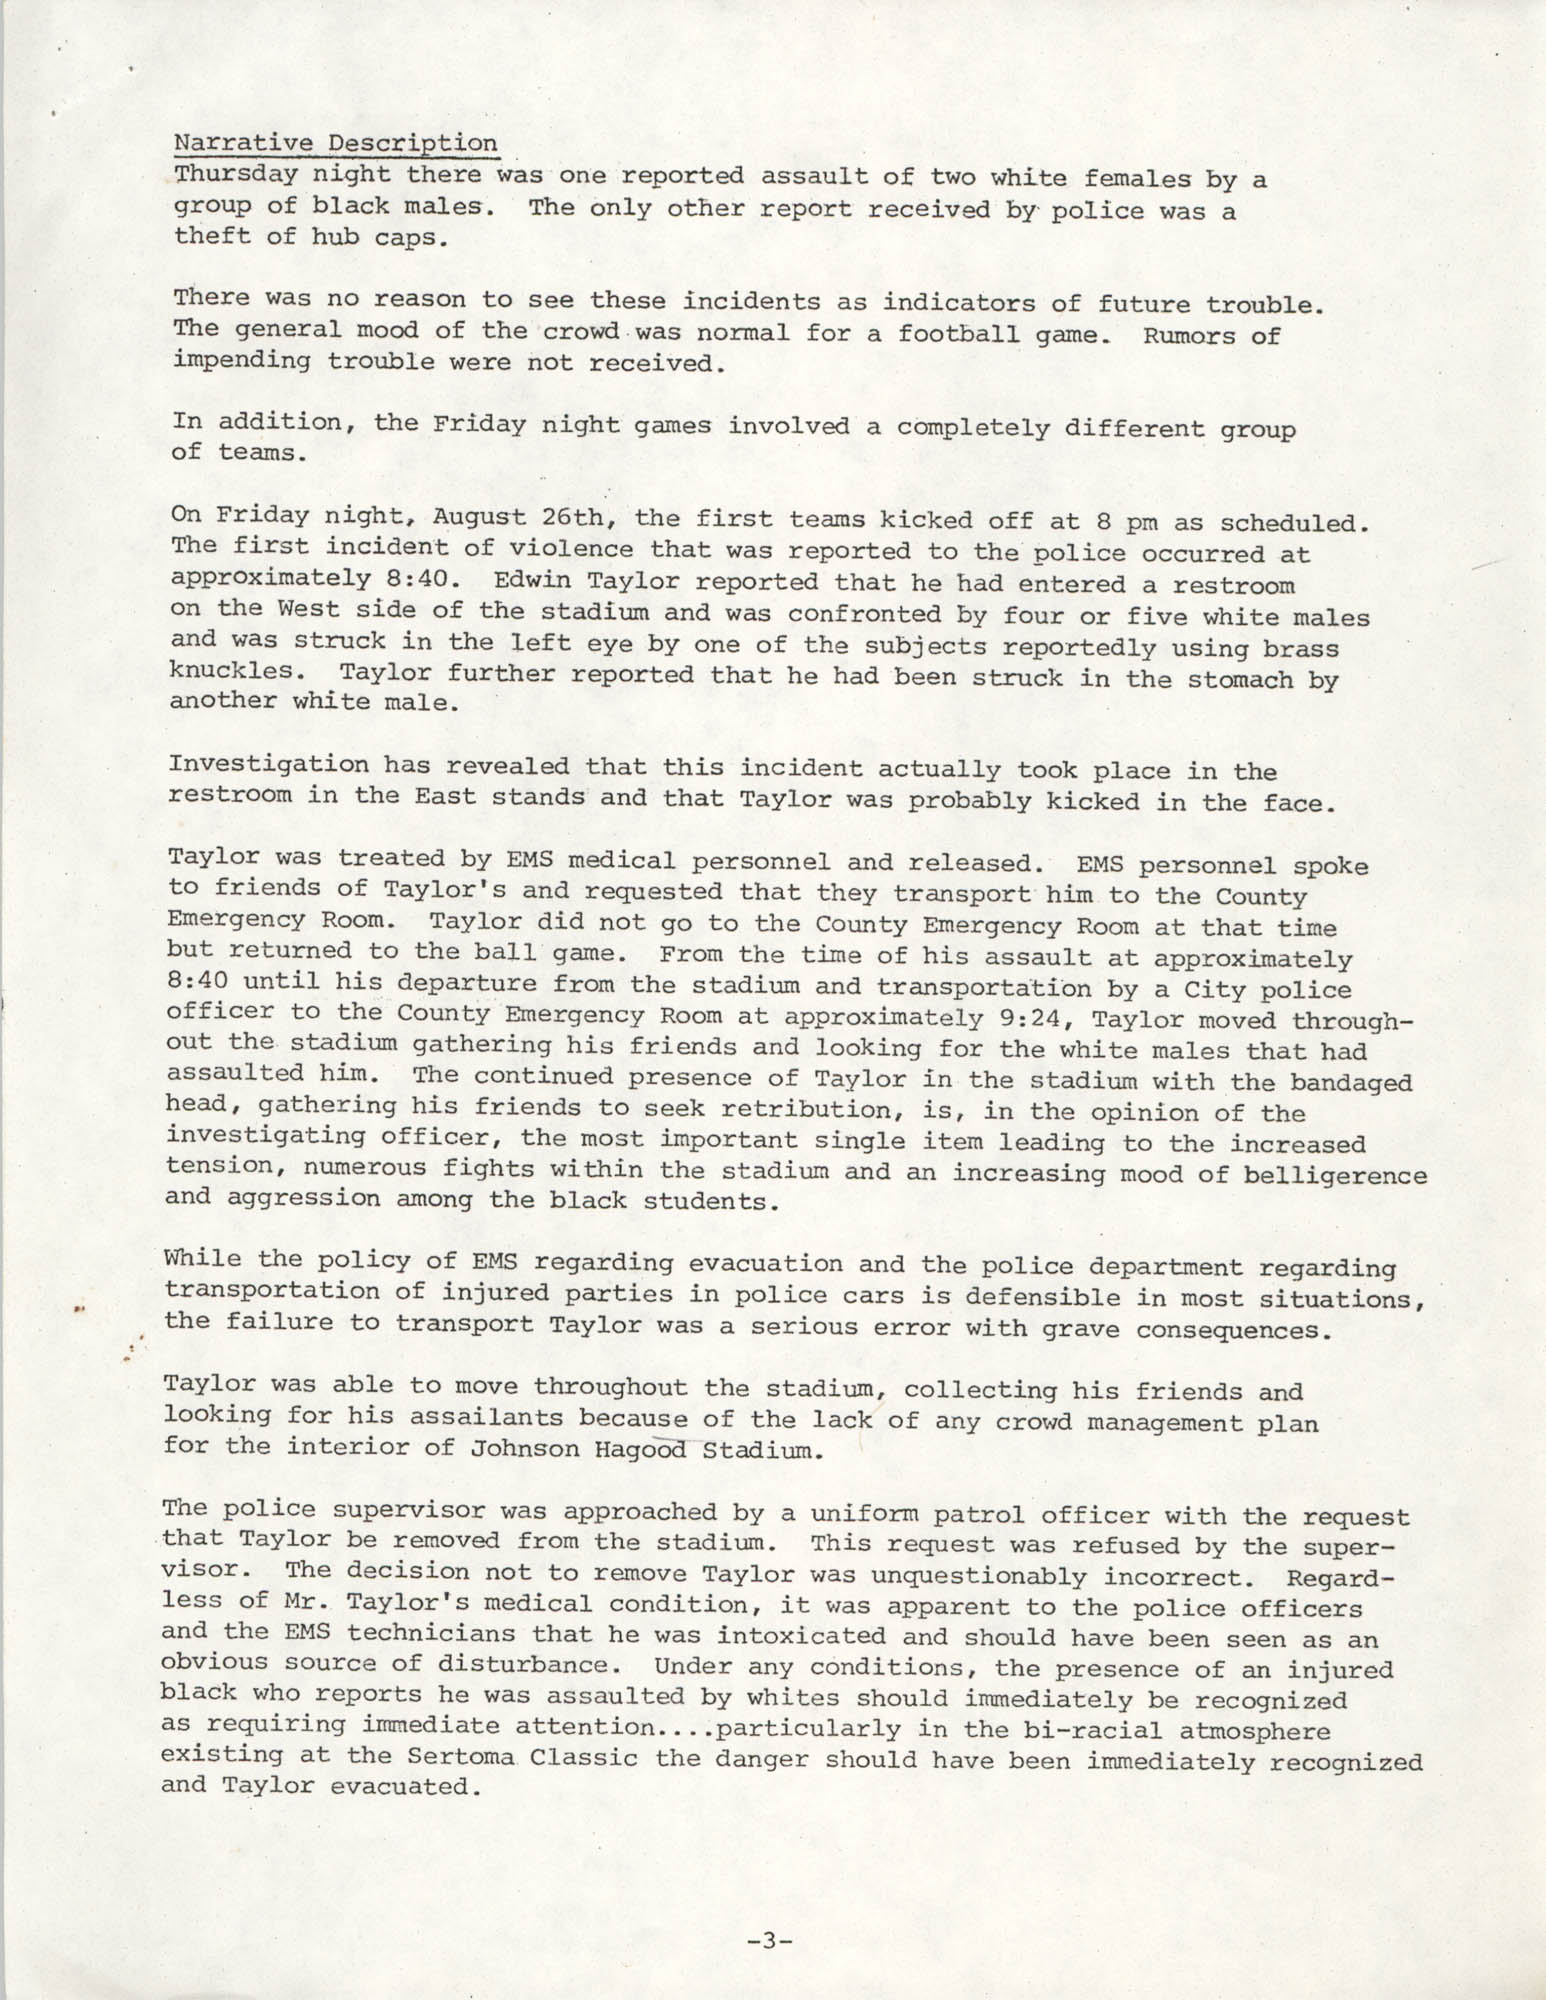 City of Charleston South Carolina Police Department Memorandum, September 6, 1977, Page 3